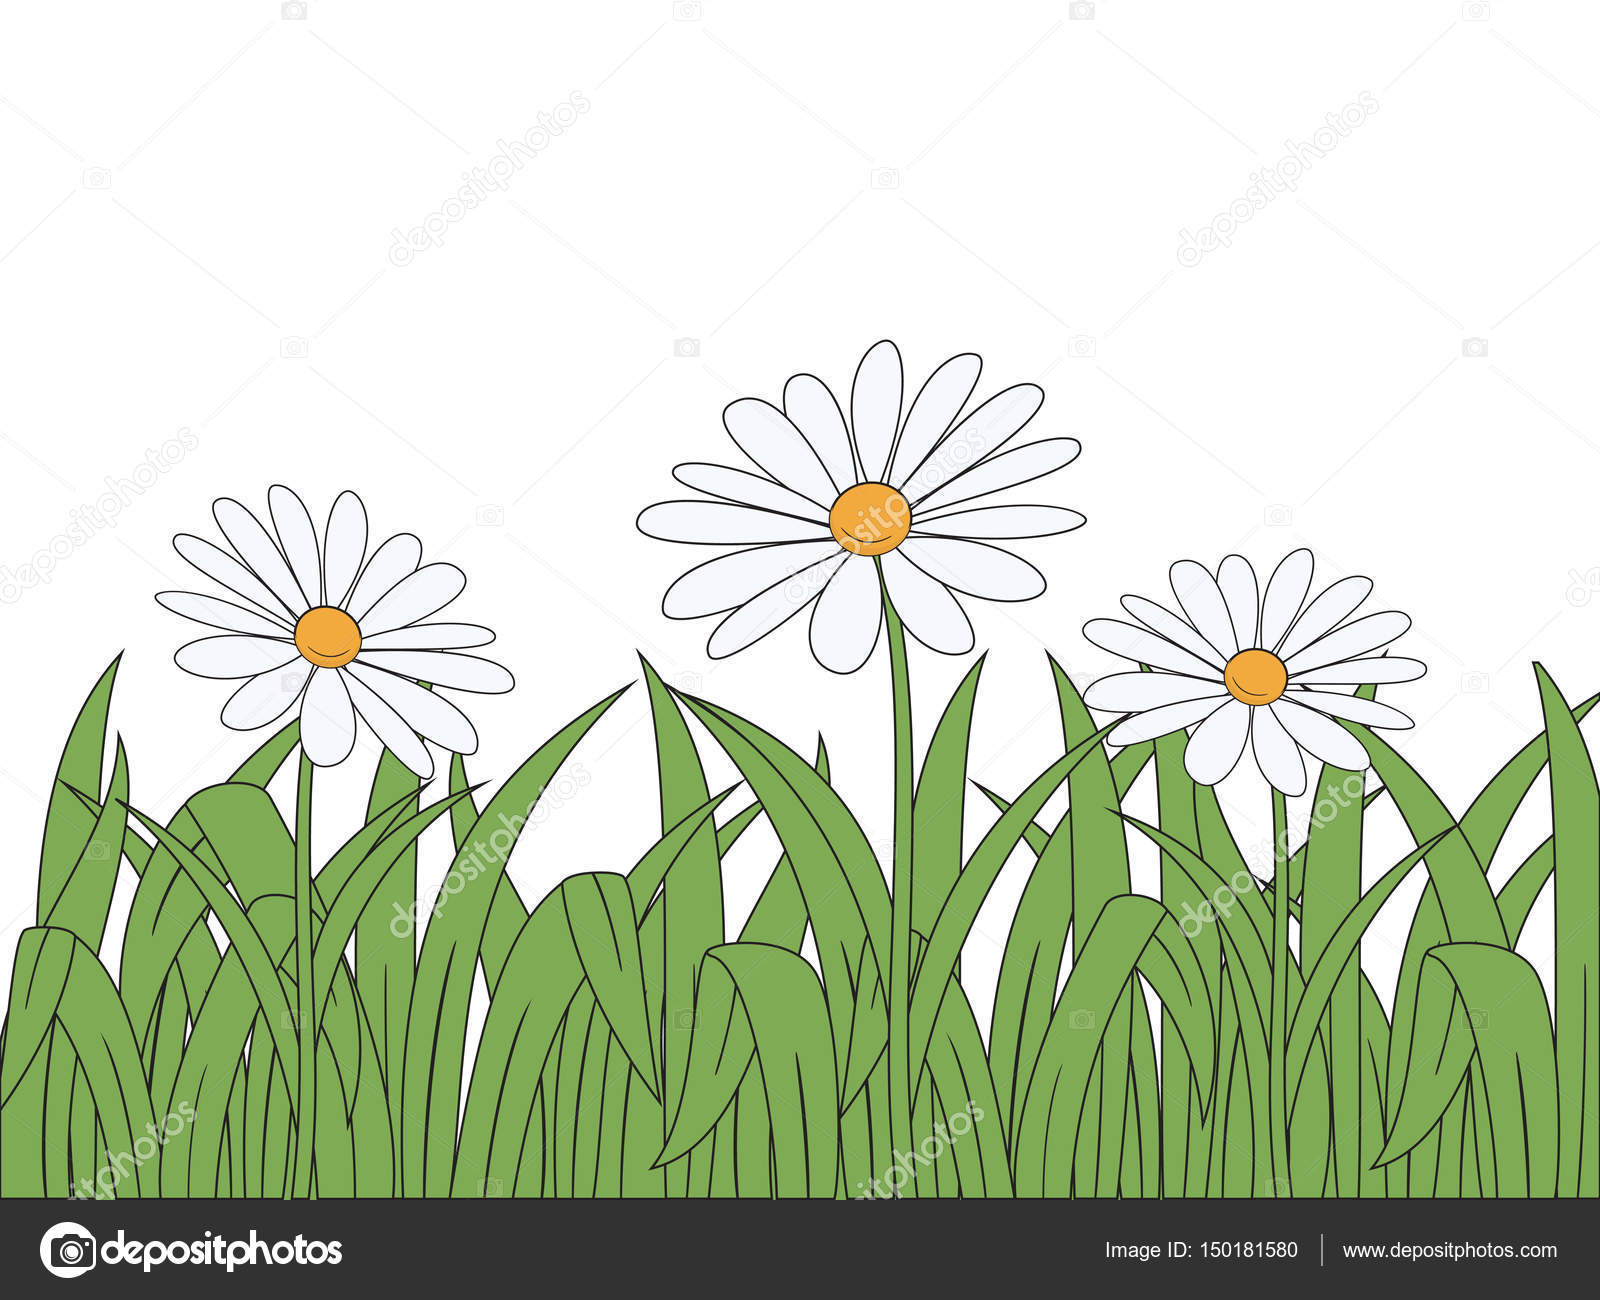 Cartoon Flowers And Grass On White Background Vector Illustration By Sanchesnet1gmail